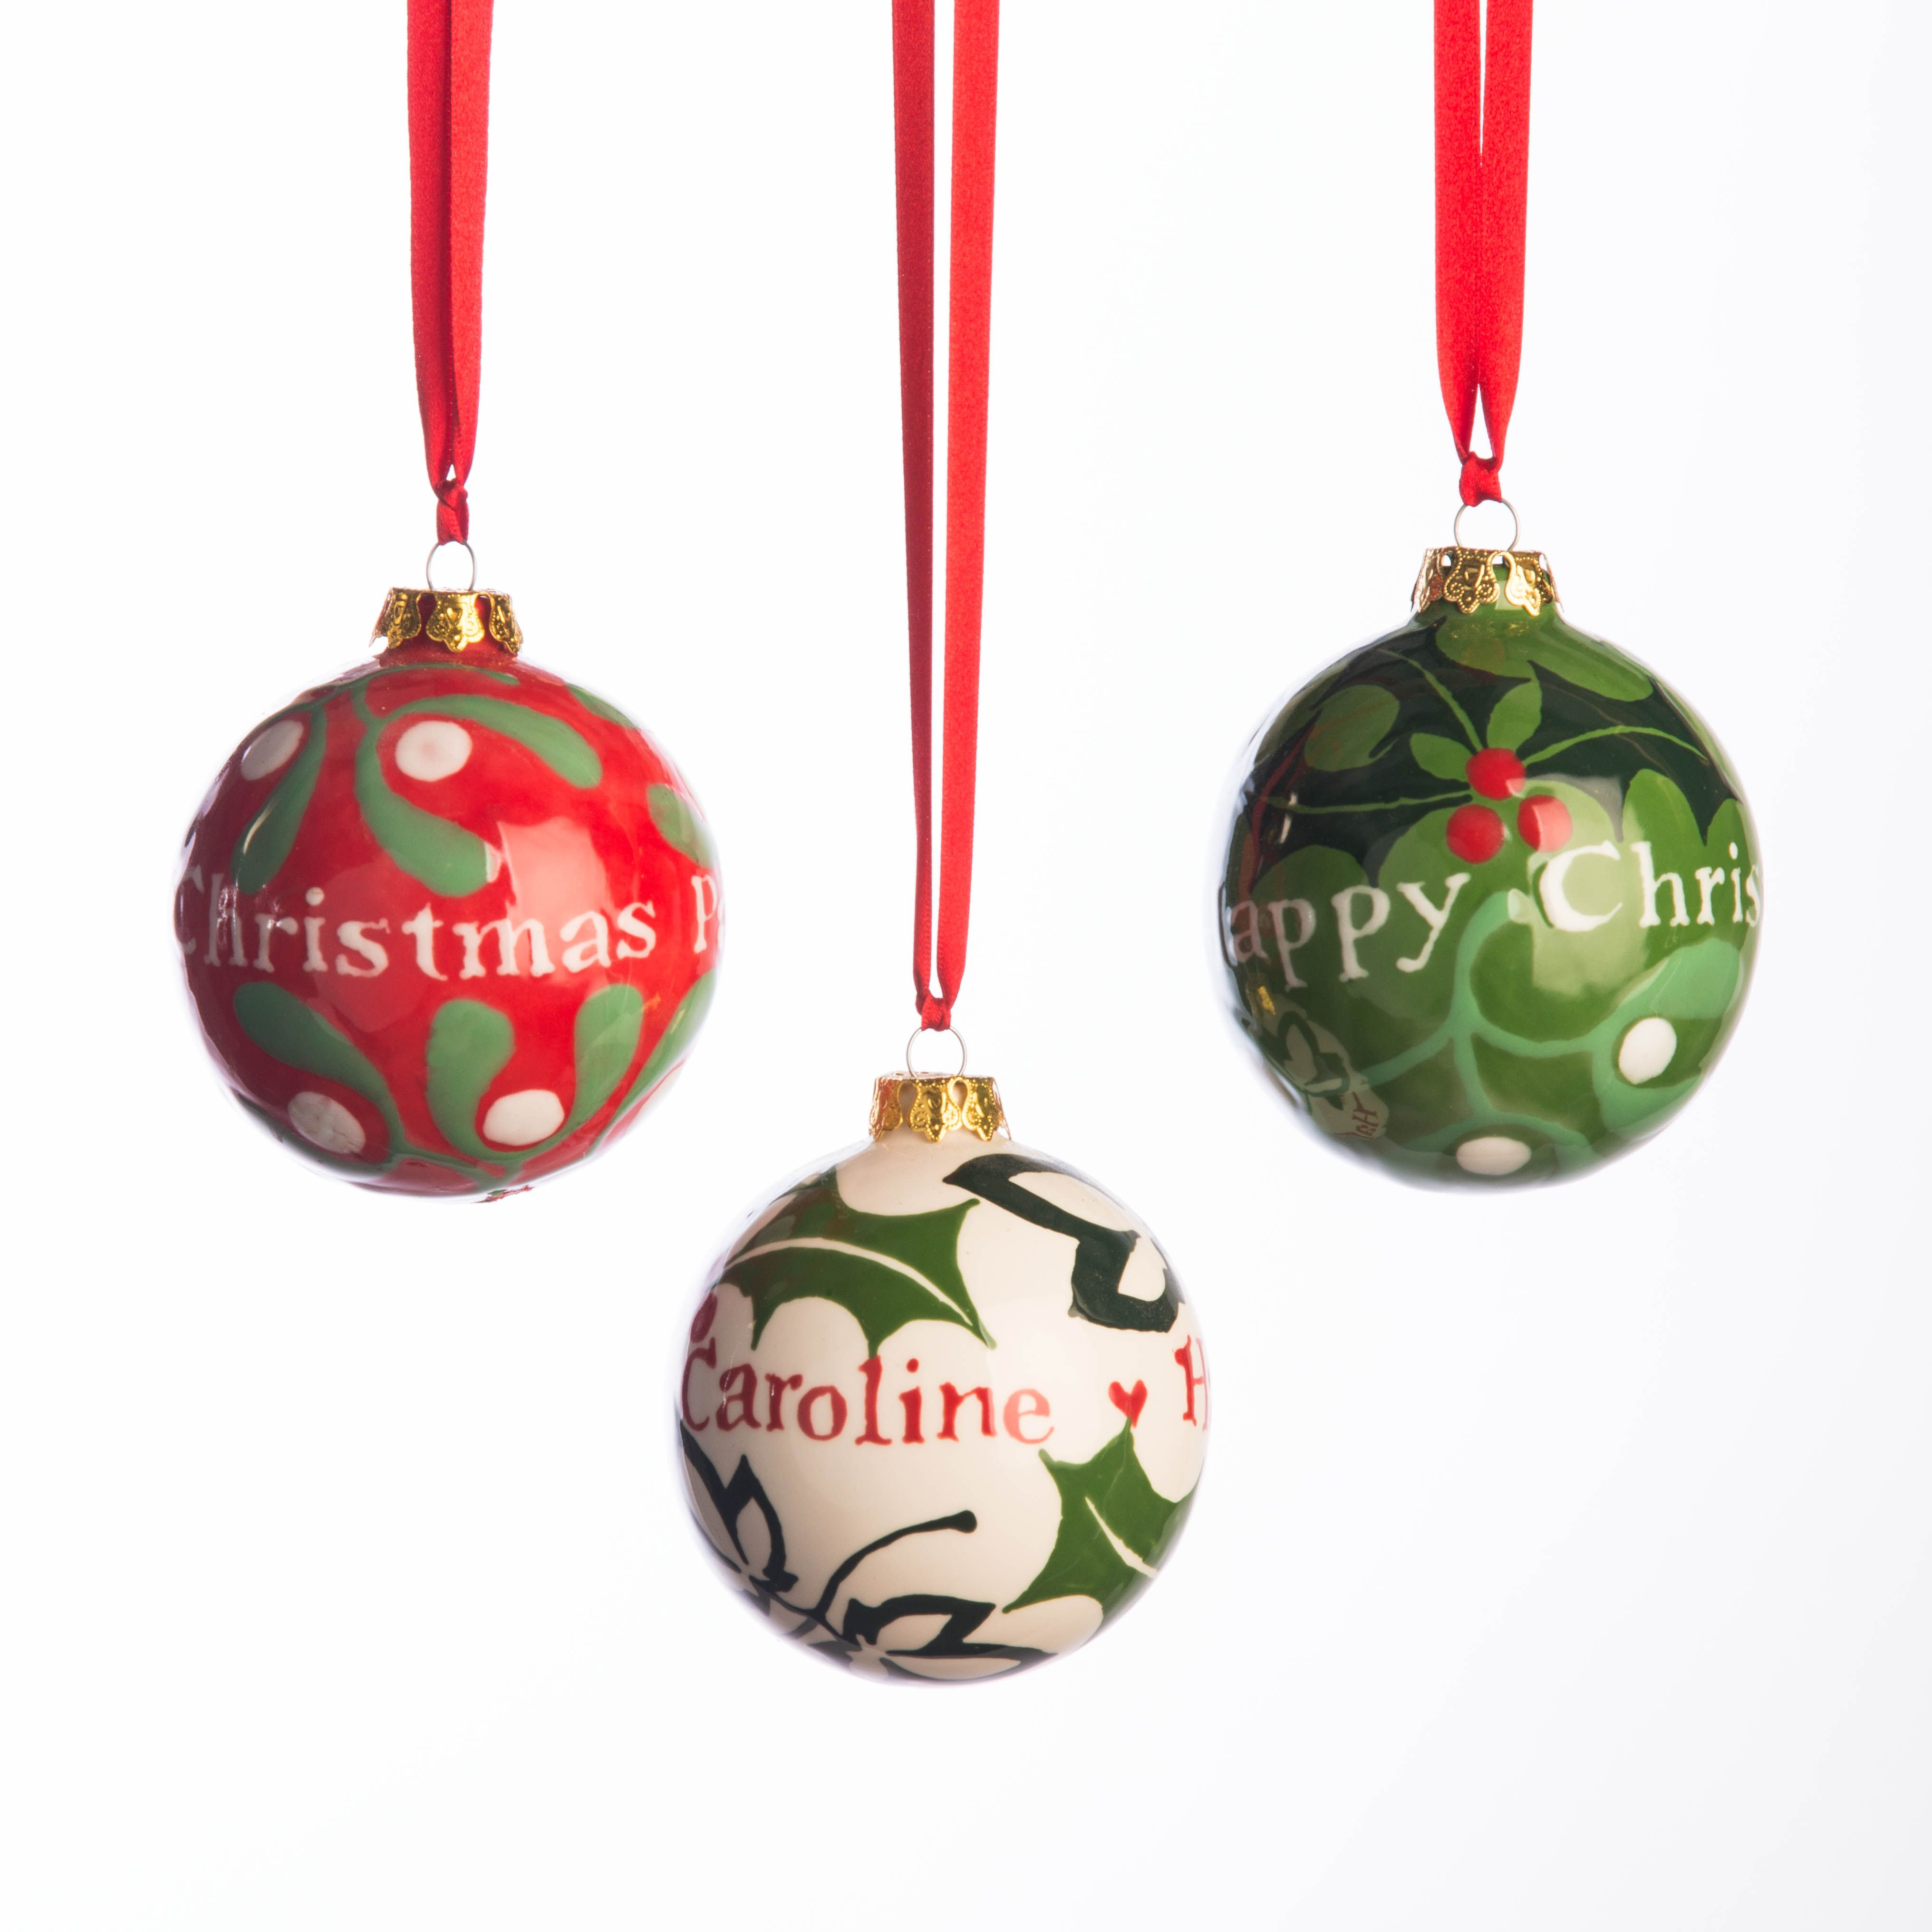 Ideas For Christmas Crafts Homemade Part - 38: Personalised Christmas Baubles By Hannah Berridge · Personalised Christmas  BaublesXmas IdeasChristmas DecorationsChristmas CraftsHomemade ChristmasDiy  ...